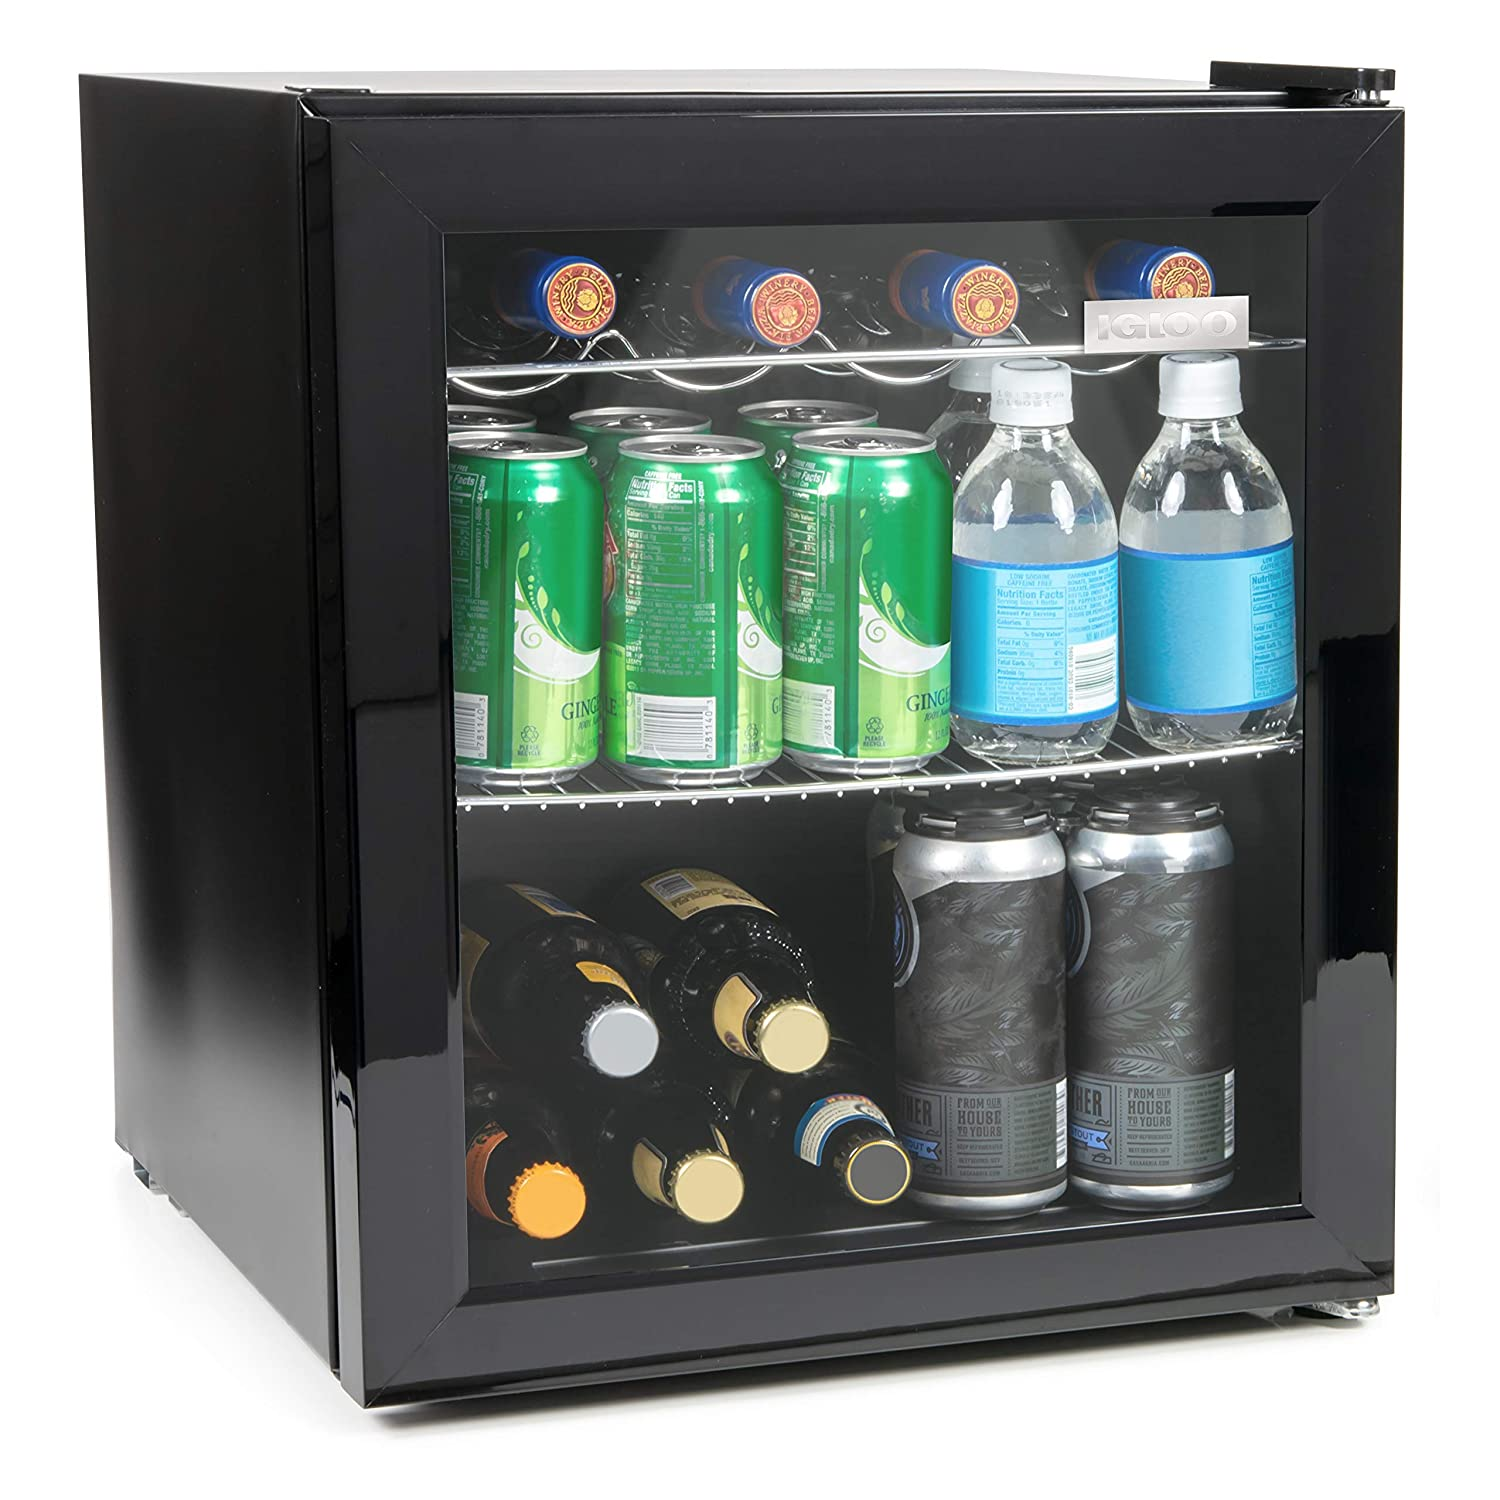 Igloo IBC16BK 60-Can Double-Pane Glass Door Beverage Cooler or 15-Wine Bottle Wine Center for Soda, Beer, Wine and Water, 1.6 Cu. Ft, Chills Low as 32 Degrees, Perfect for Offices, Bars, Dorms